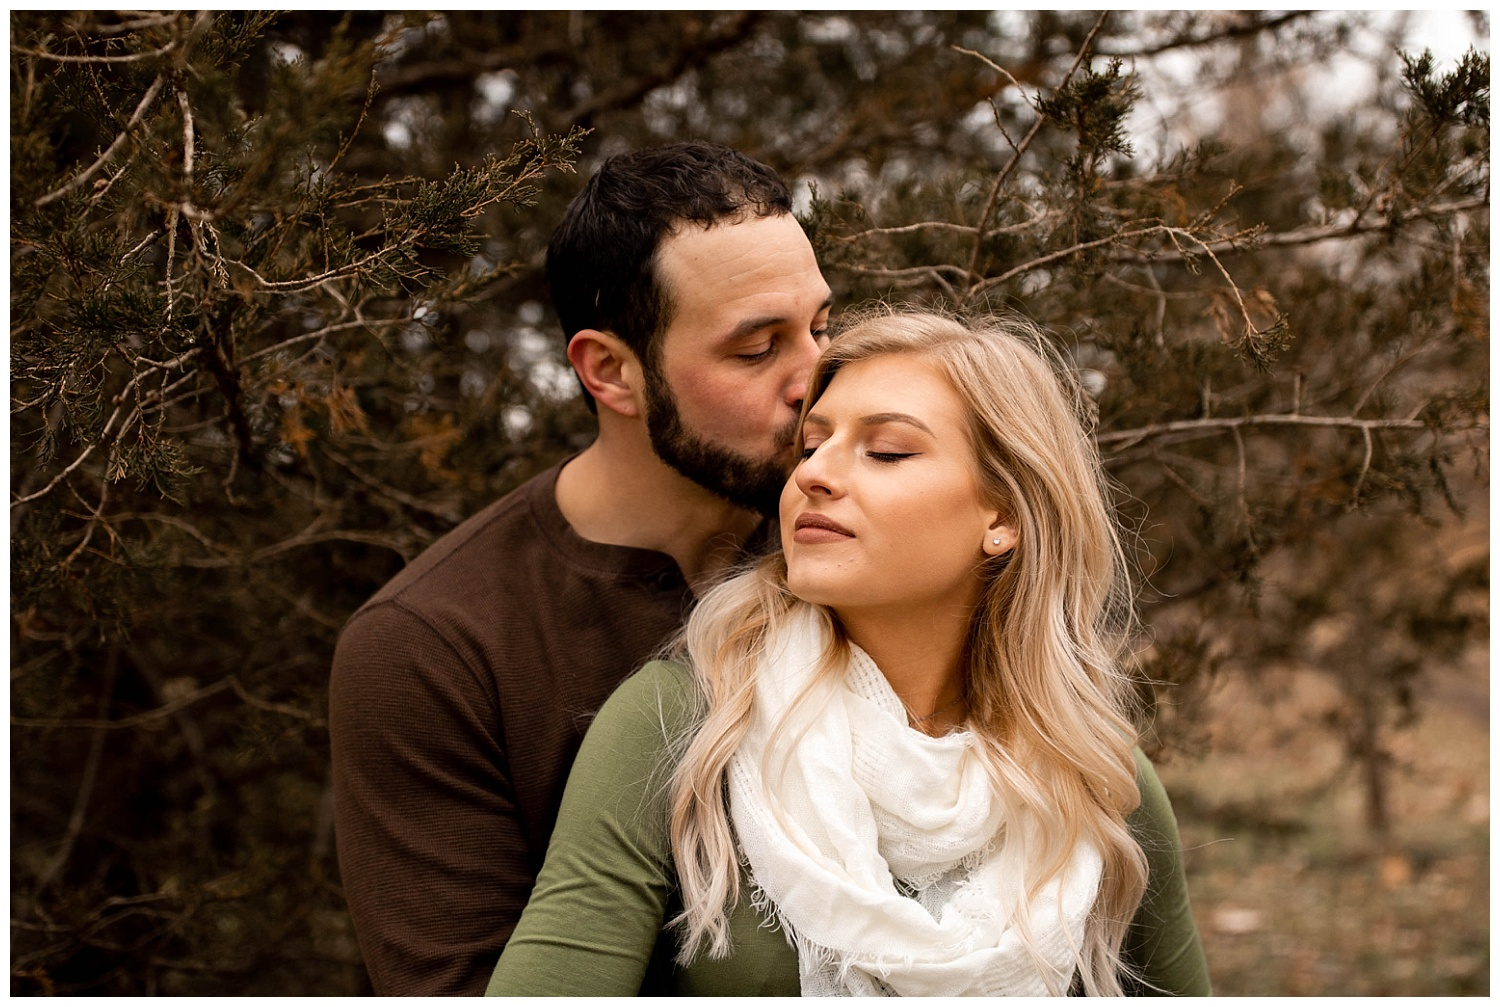 Christmas Tree Farms-Amanda & Jake Engagement_0205.jpg